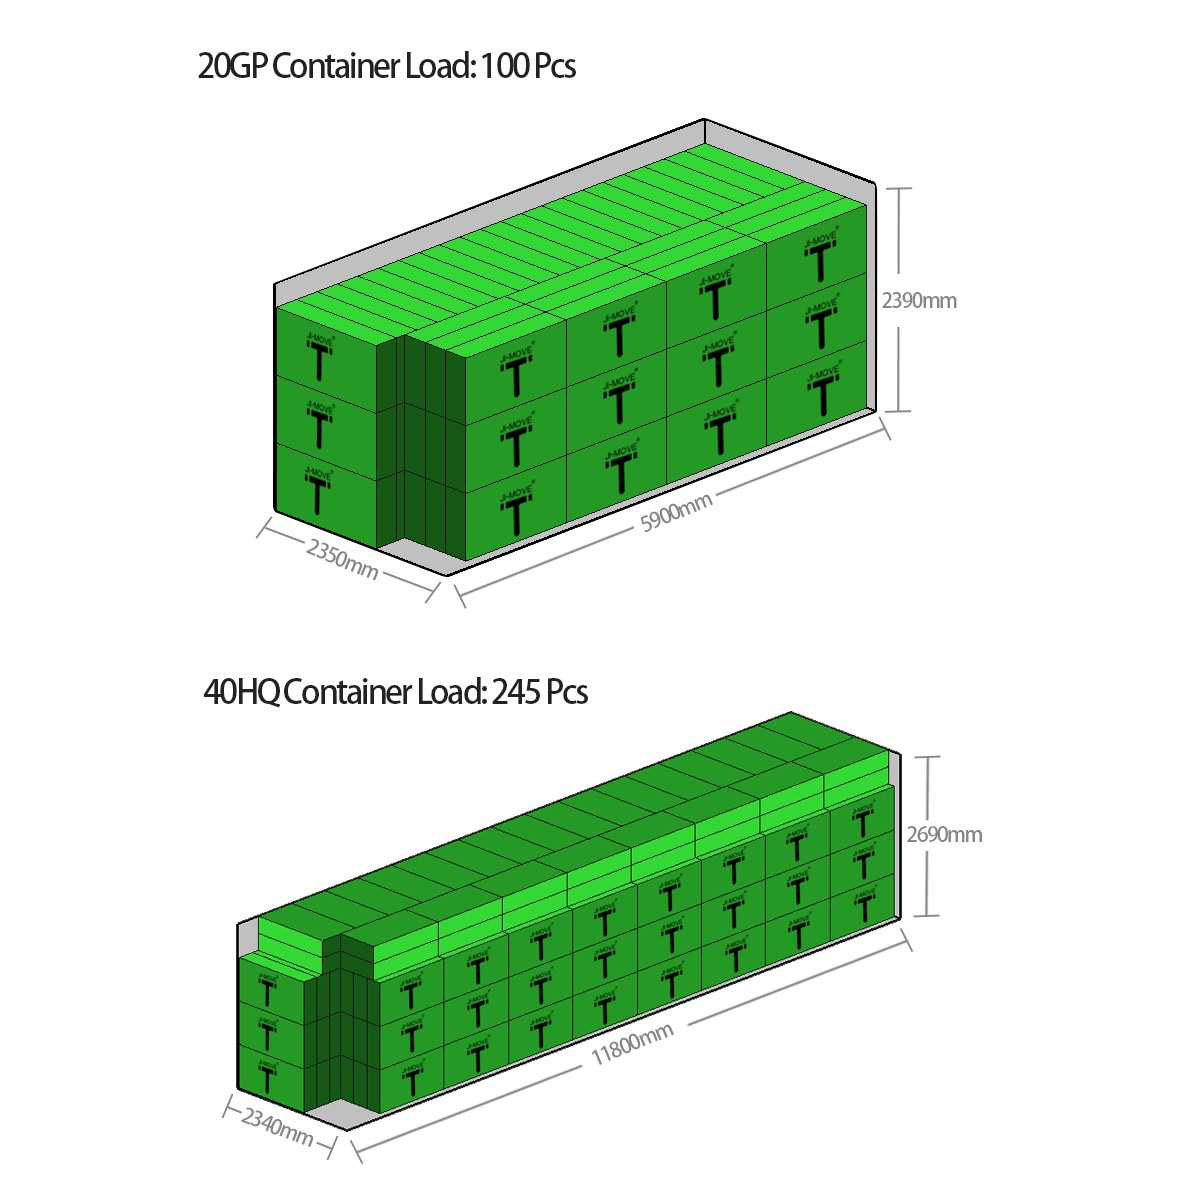 The container loading plan